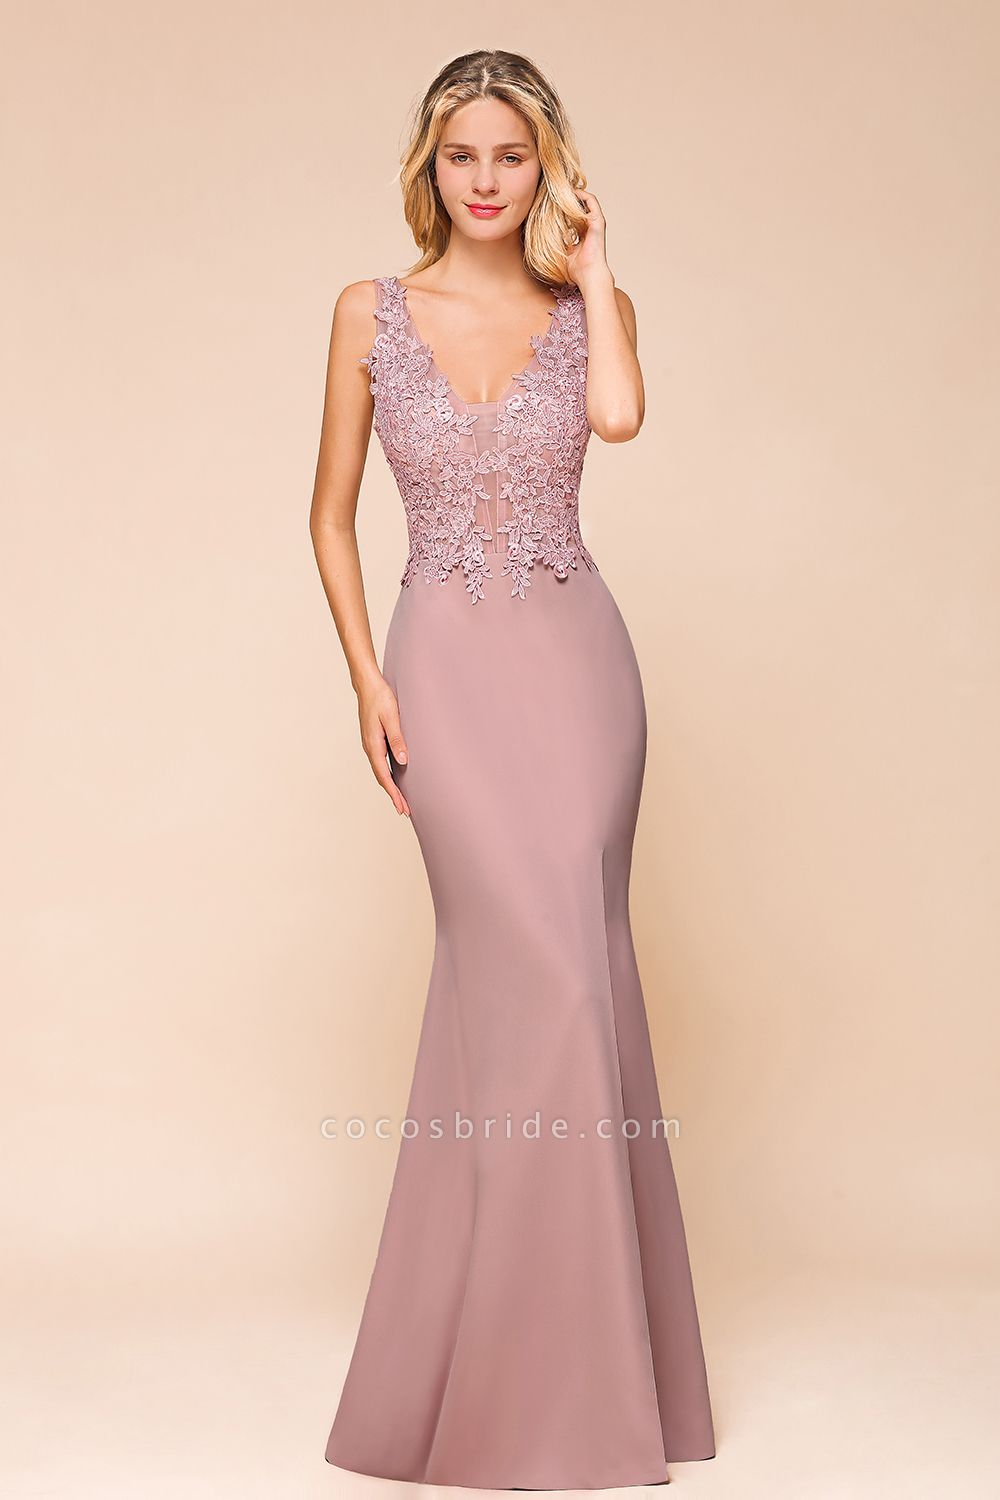 Dusty Pink Mermaid Lace Long Sleeveless Evening Gowns